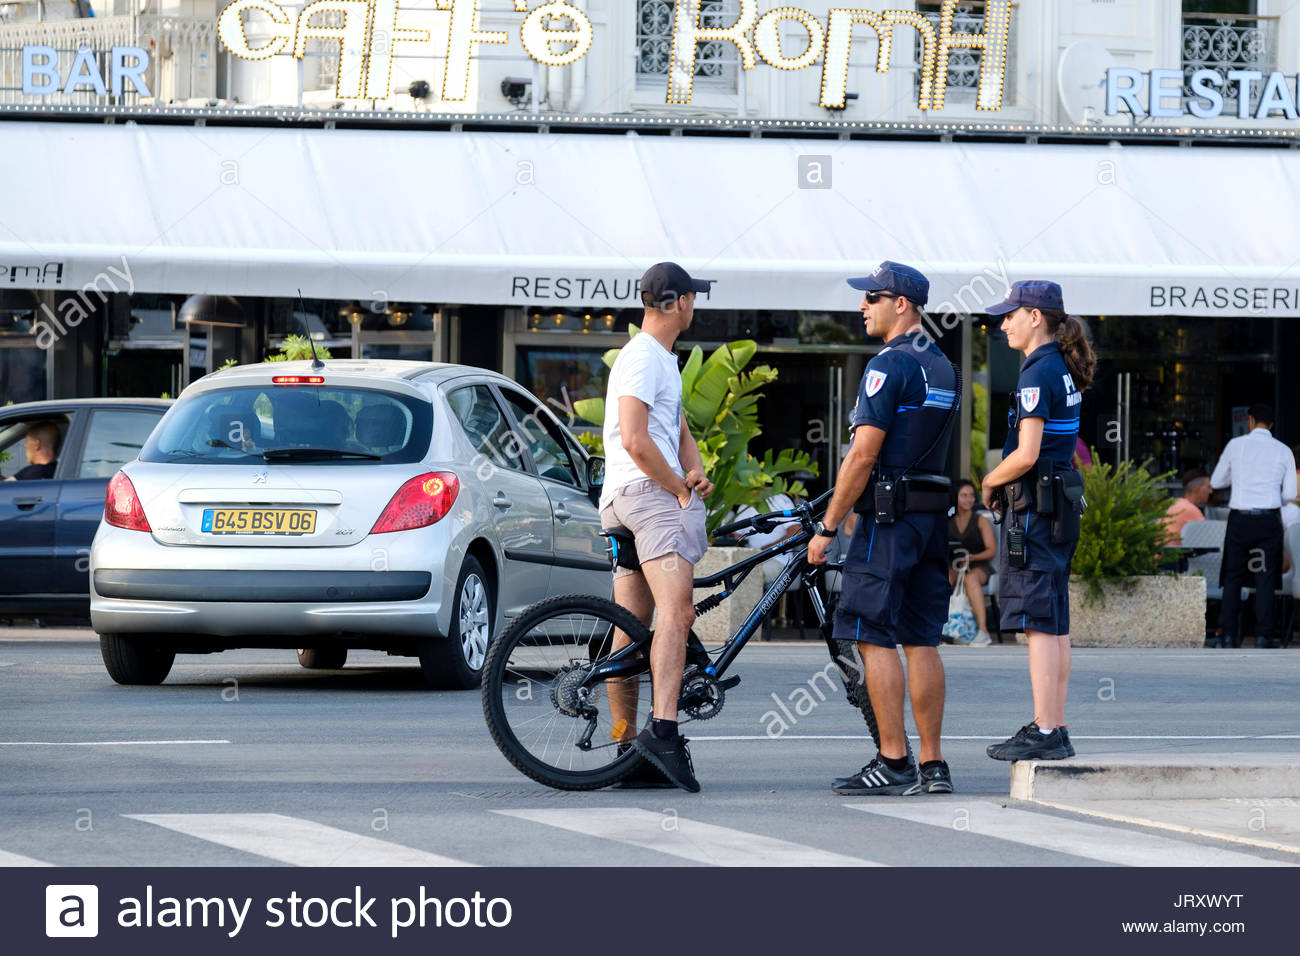 Two French police officers ask to check. Males pockets as part of the heightened security state in France - Stock Image